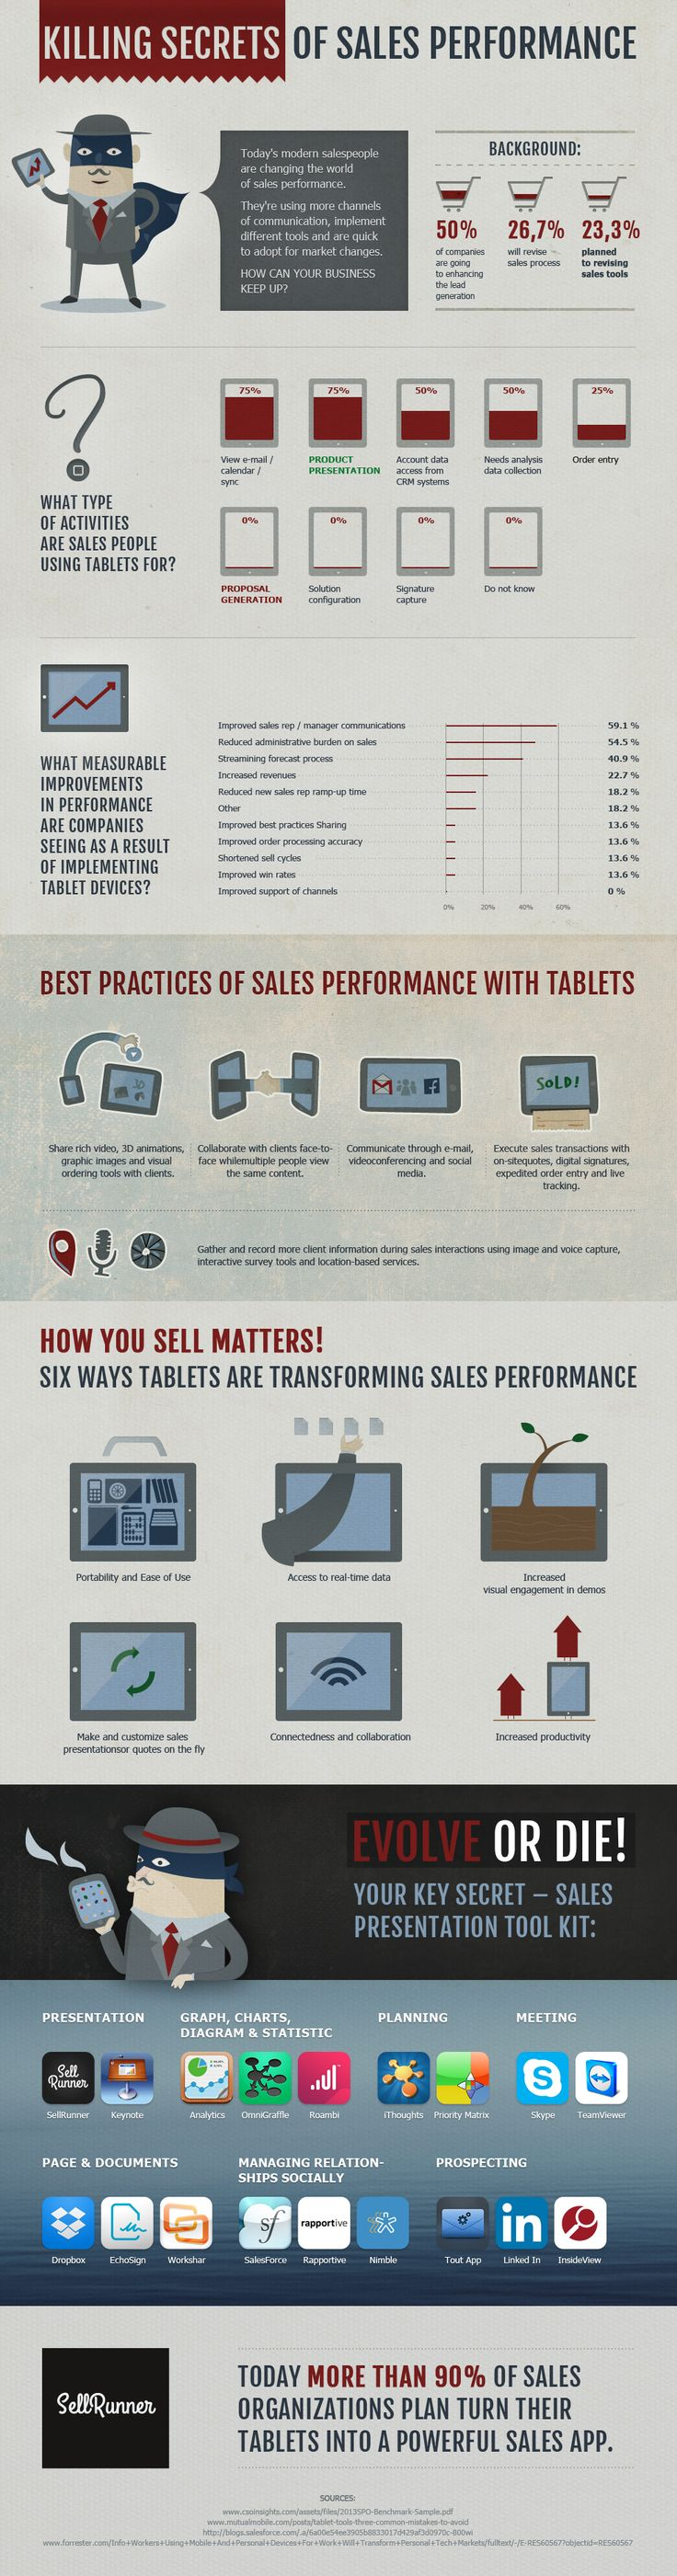 Uncategorized small business ideas small businesses ehow home business ideas to startsmall business ideas bad good ugly ideas - Killing Secrets Of Sales Performance Infographic Business